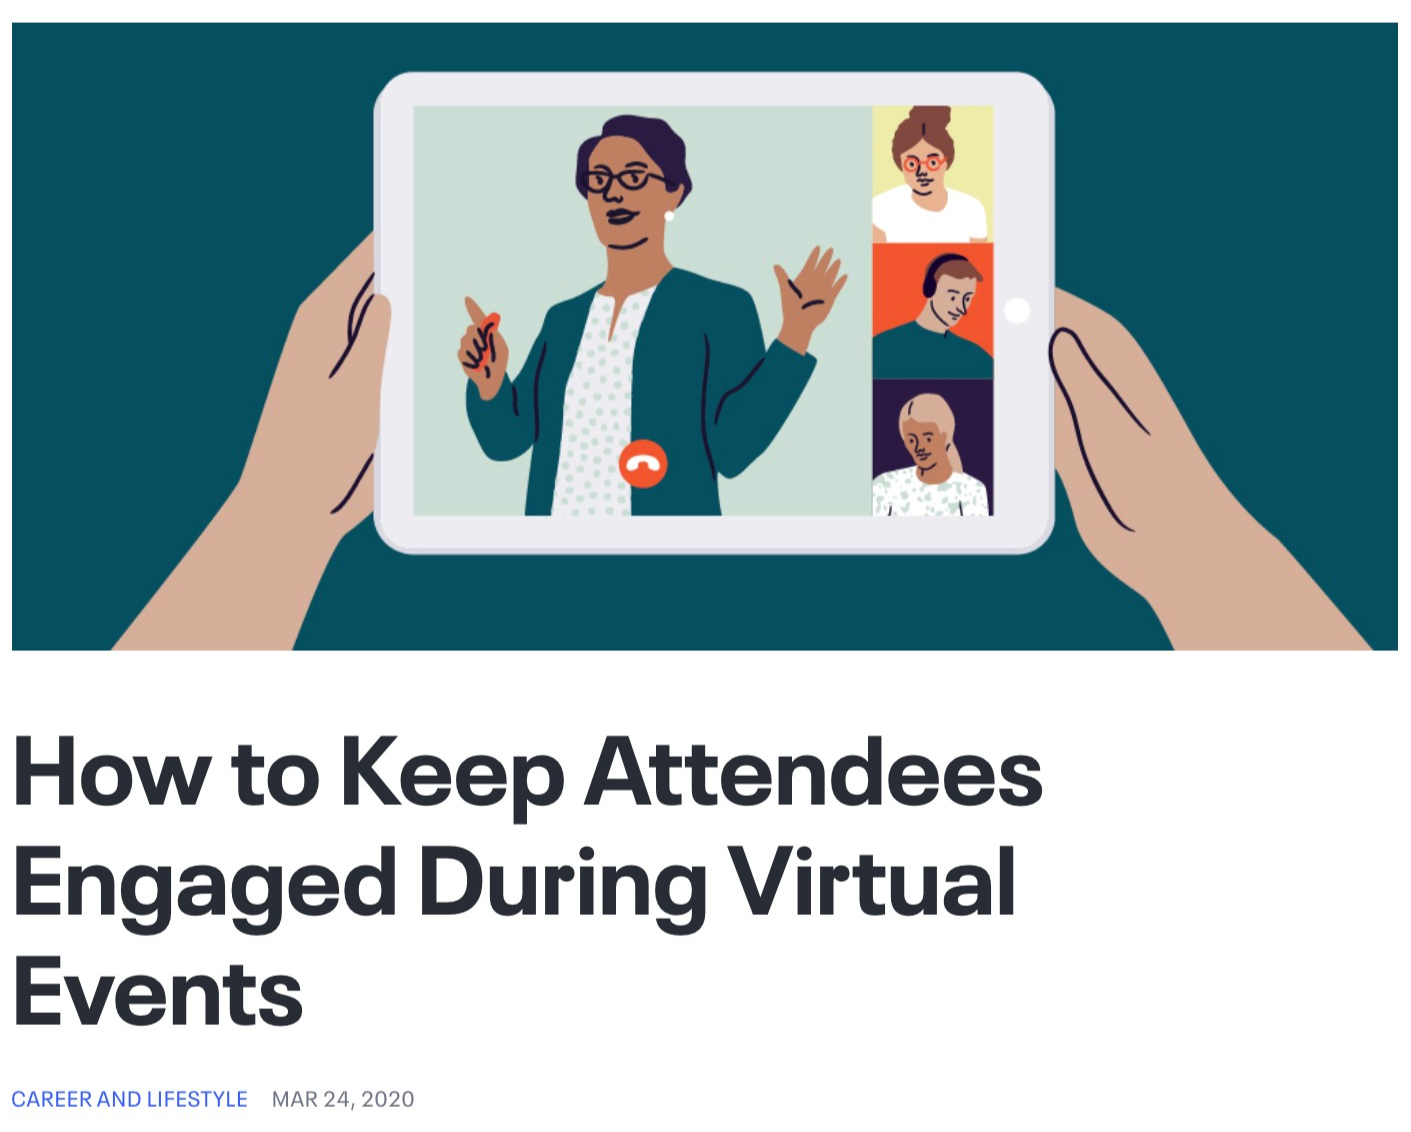 How to Keep Attendees Engaged During Virtual Events